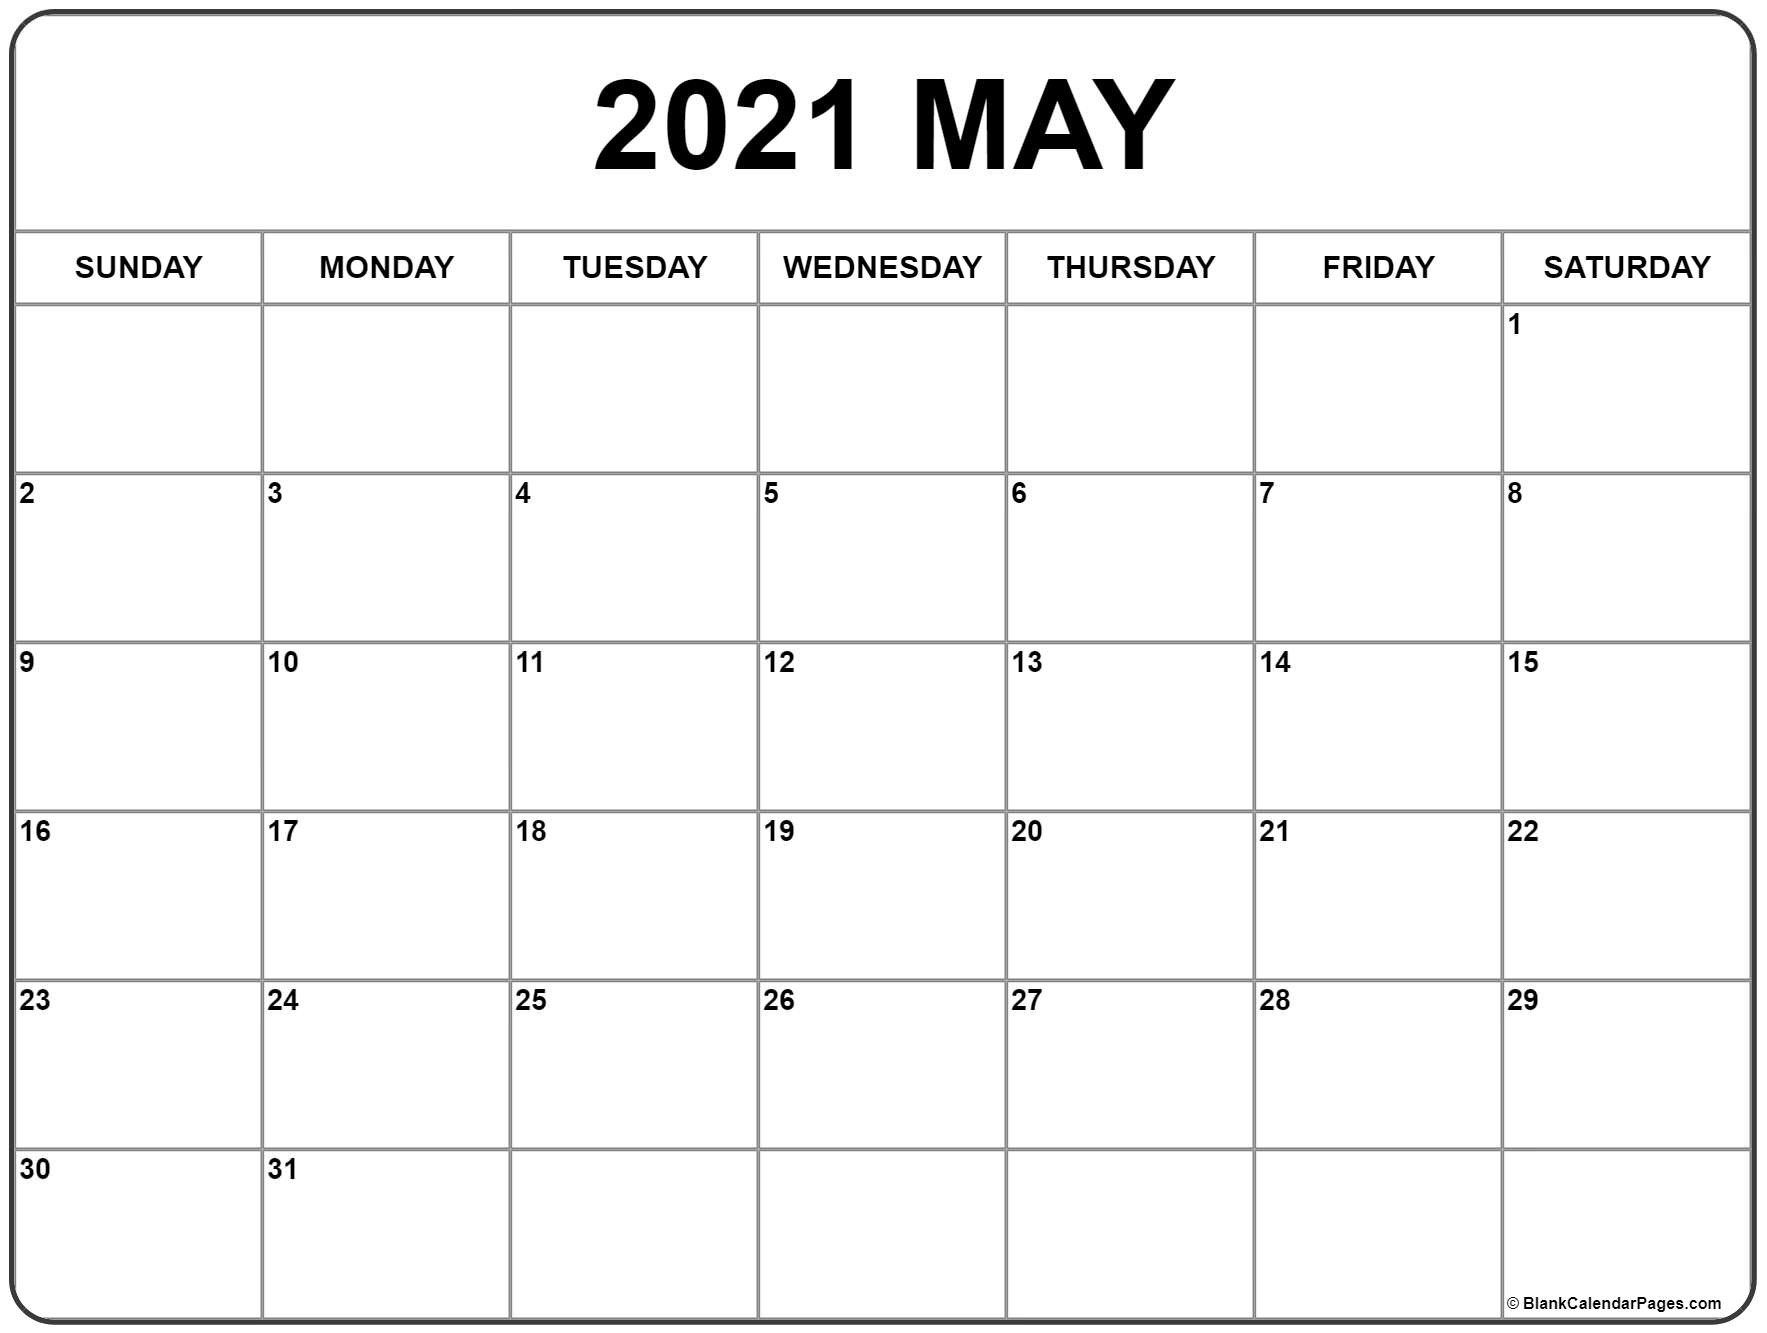 May 2021 Calendar | Free Printable Monthly Calendars  2021 Printable Calendar By Month Free Pdf